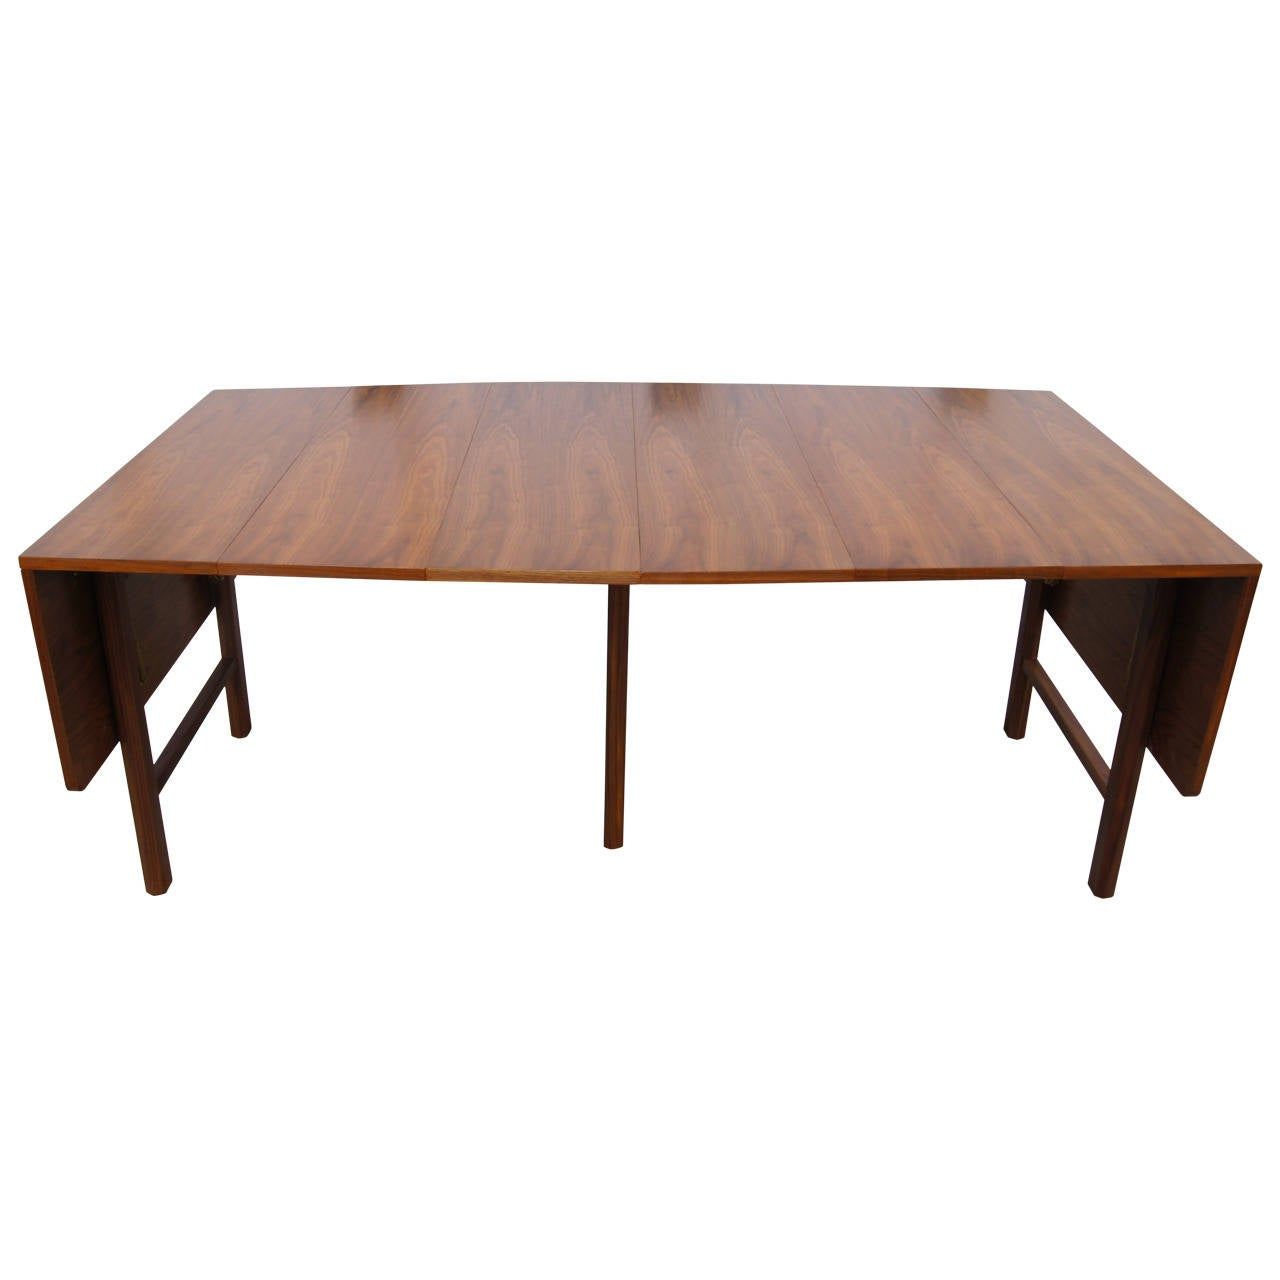 Drop leaf extension dining table by edward wormley for for Drop leaf dining table